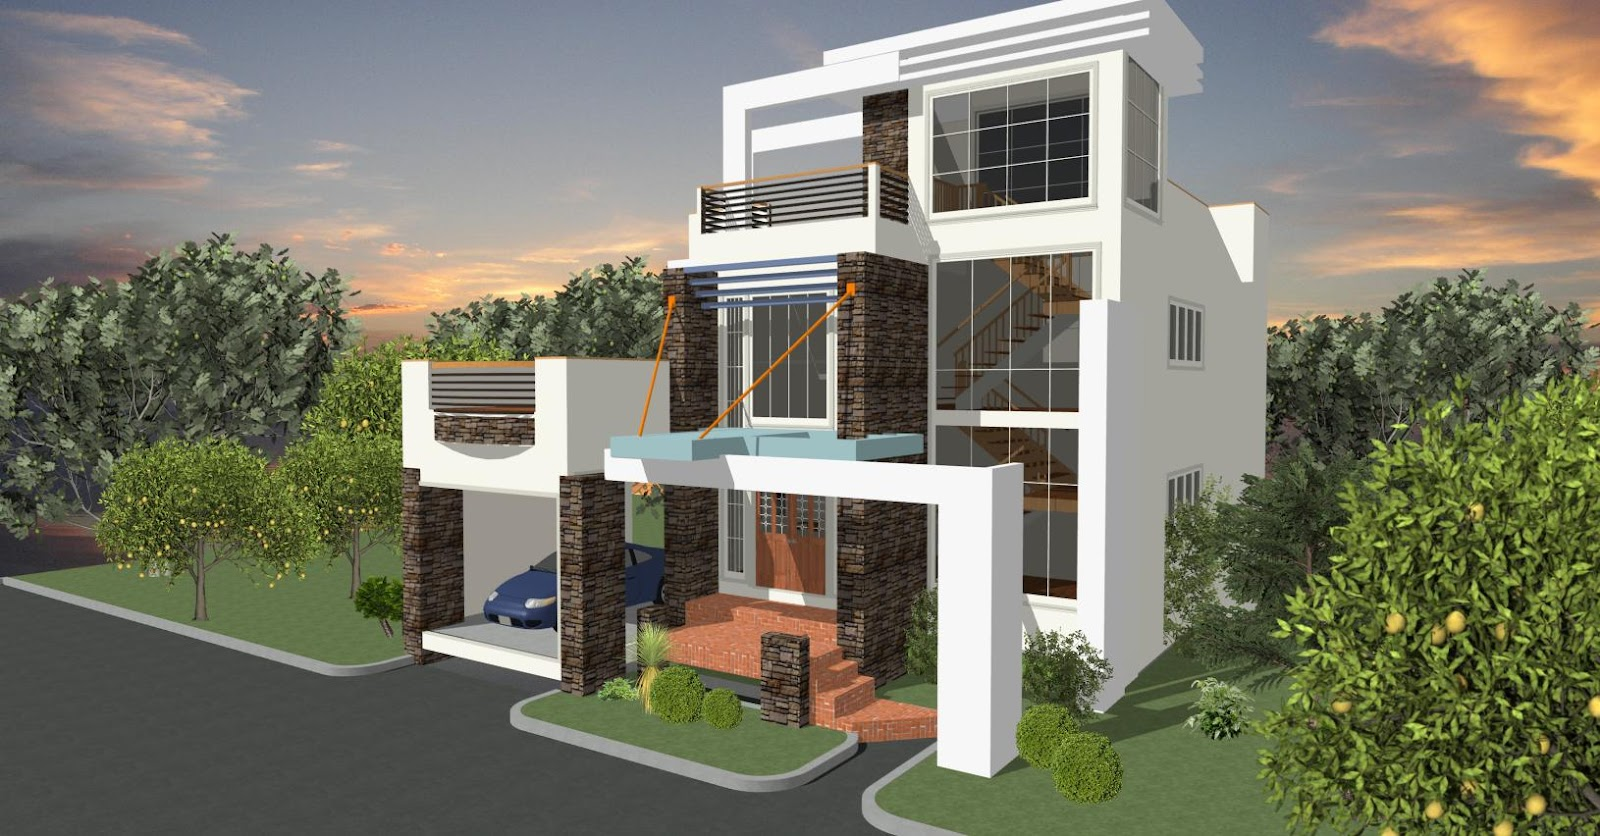 Dream home designs erecre group realty design and Model plans for house